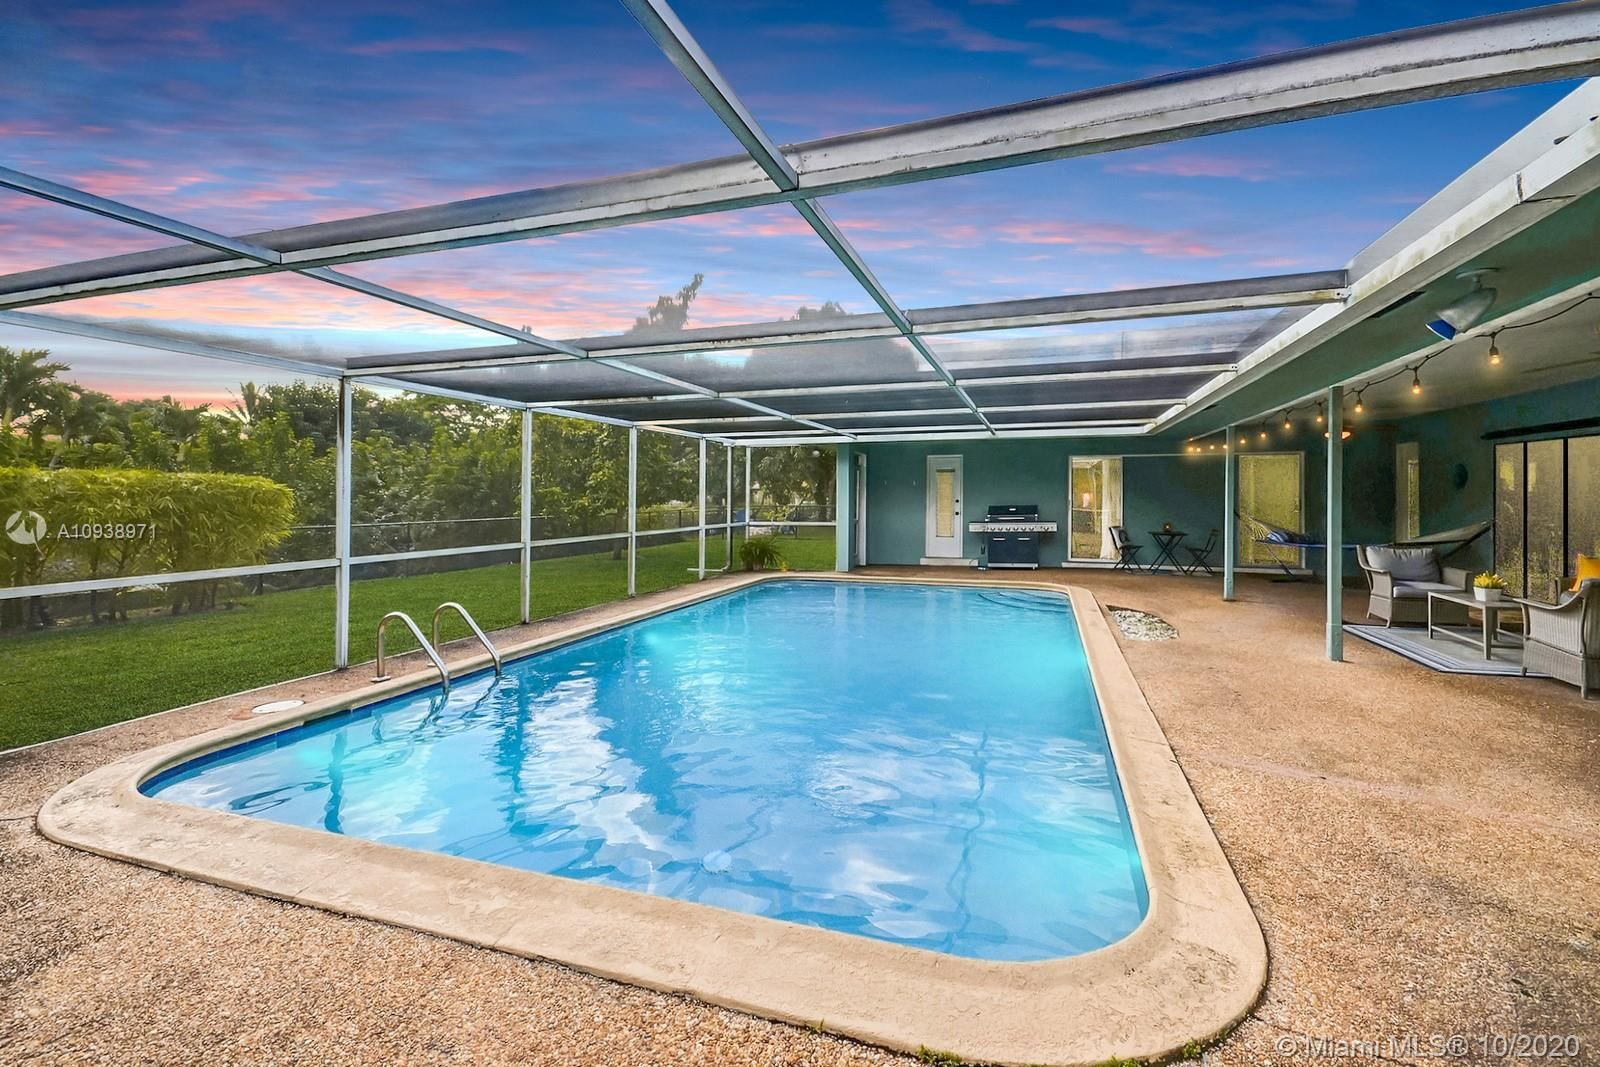 680 NW 72nd Ave, Plantation, FL 33317 - #: A10938971